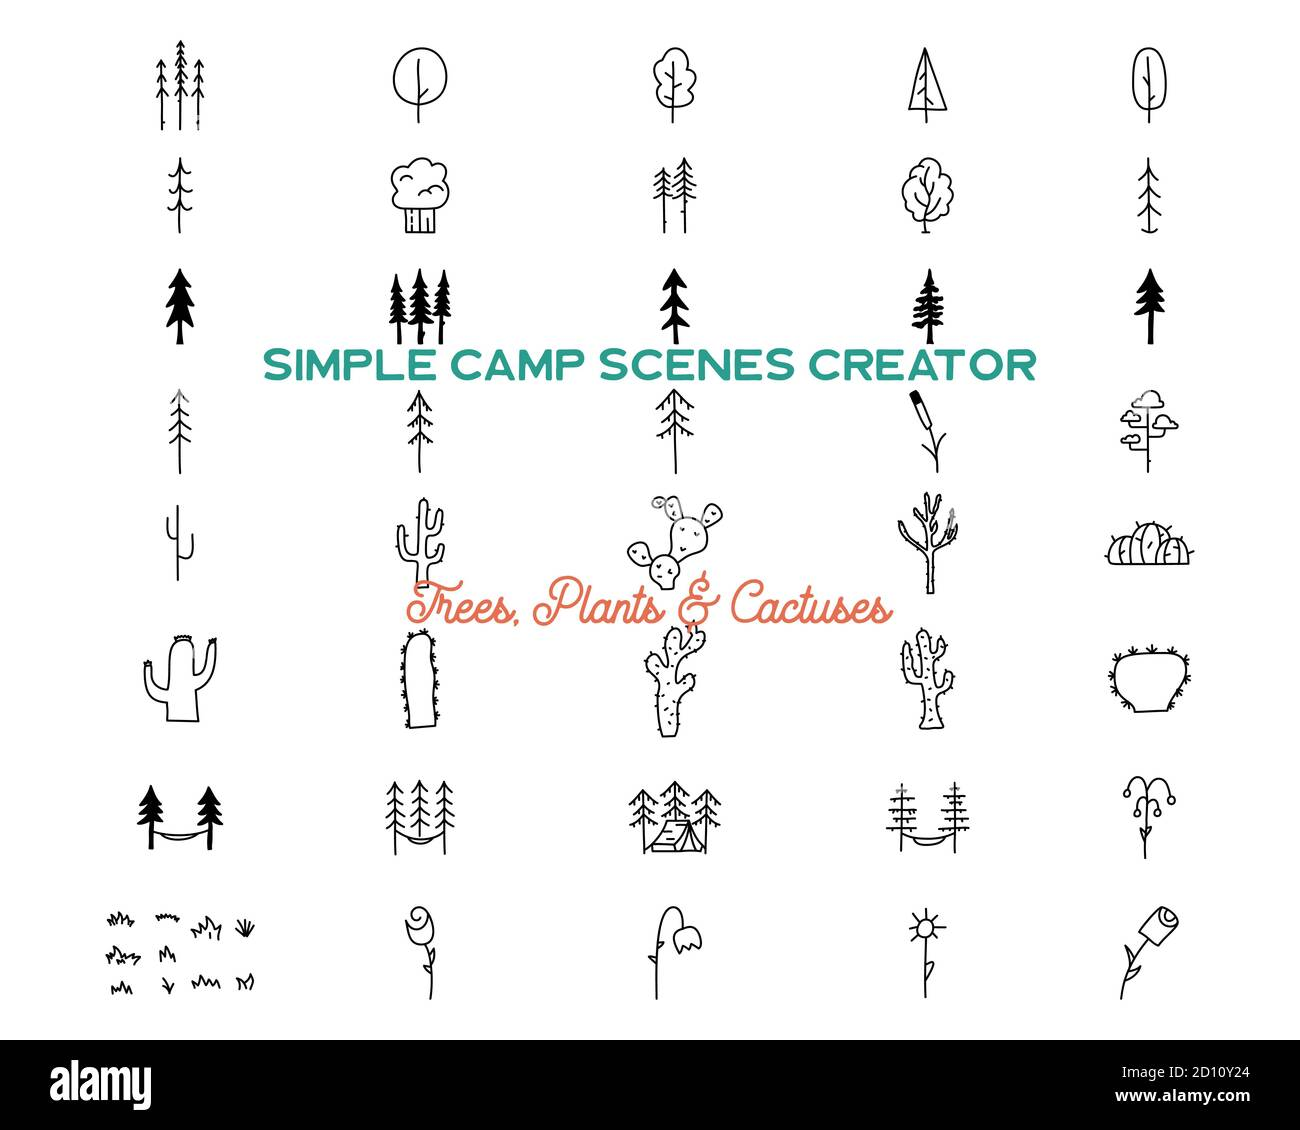 Simple vector trees and cactuses icons shapes set. Logo creation kit. Outdoor adventure line art elements bundle. Silhouette linear concept. Stock Stock Vector